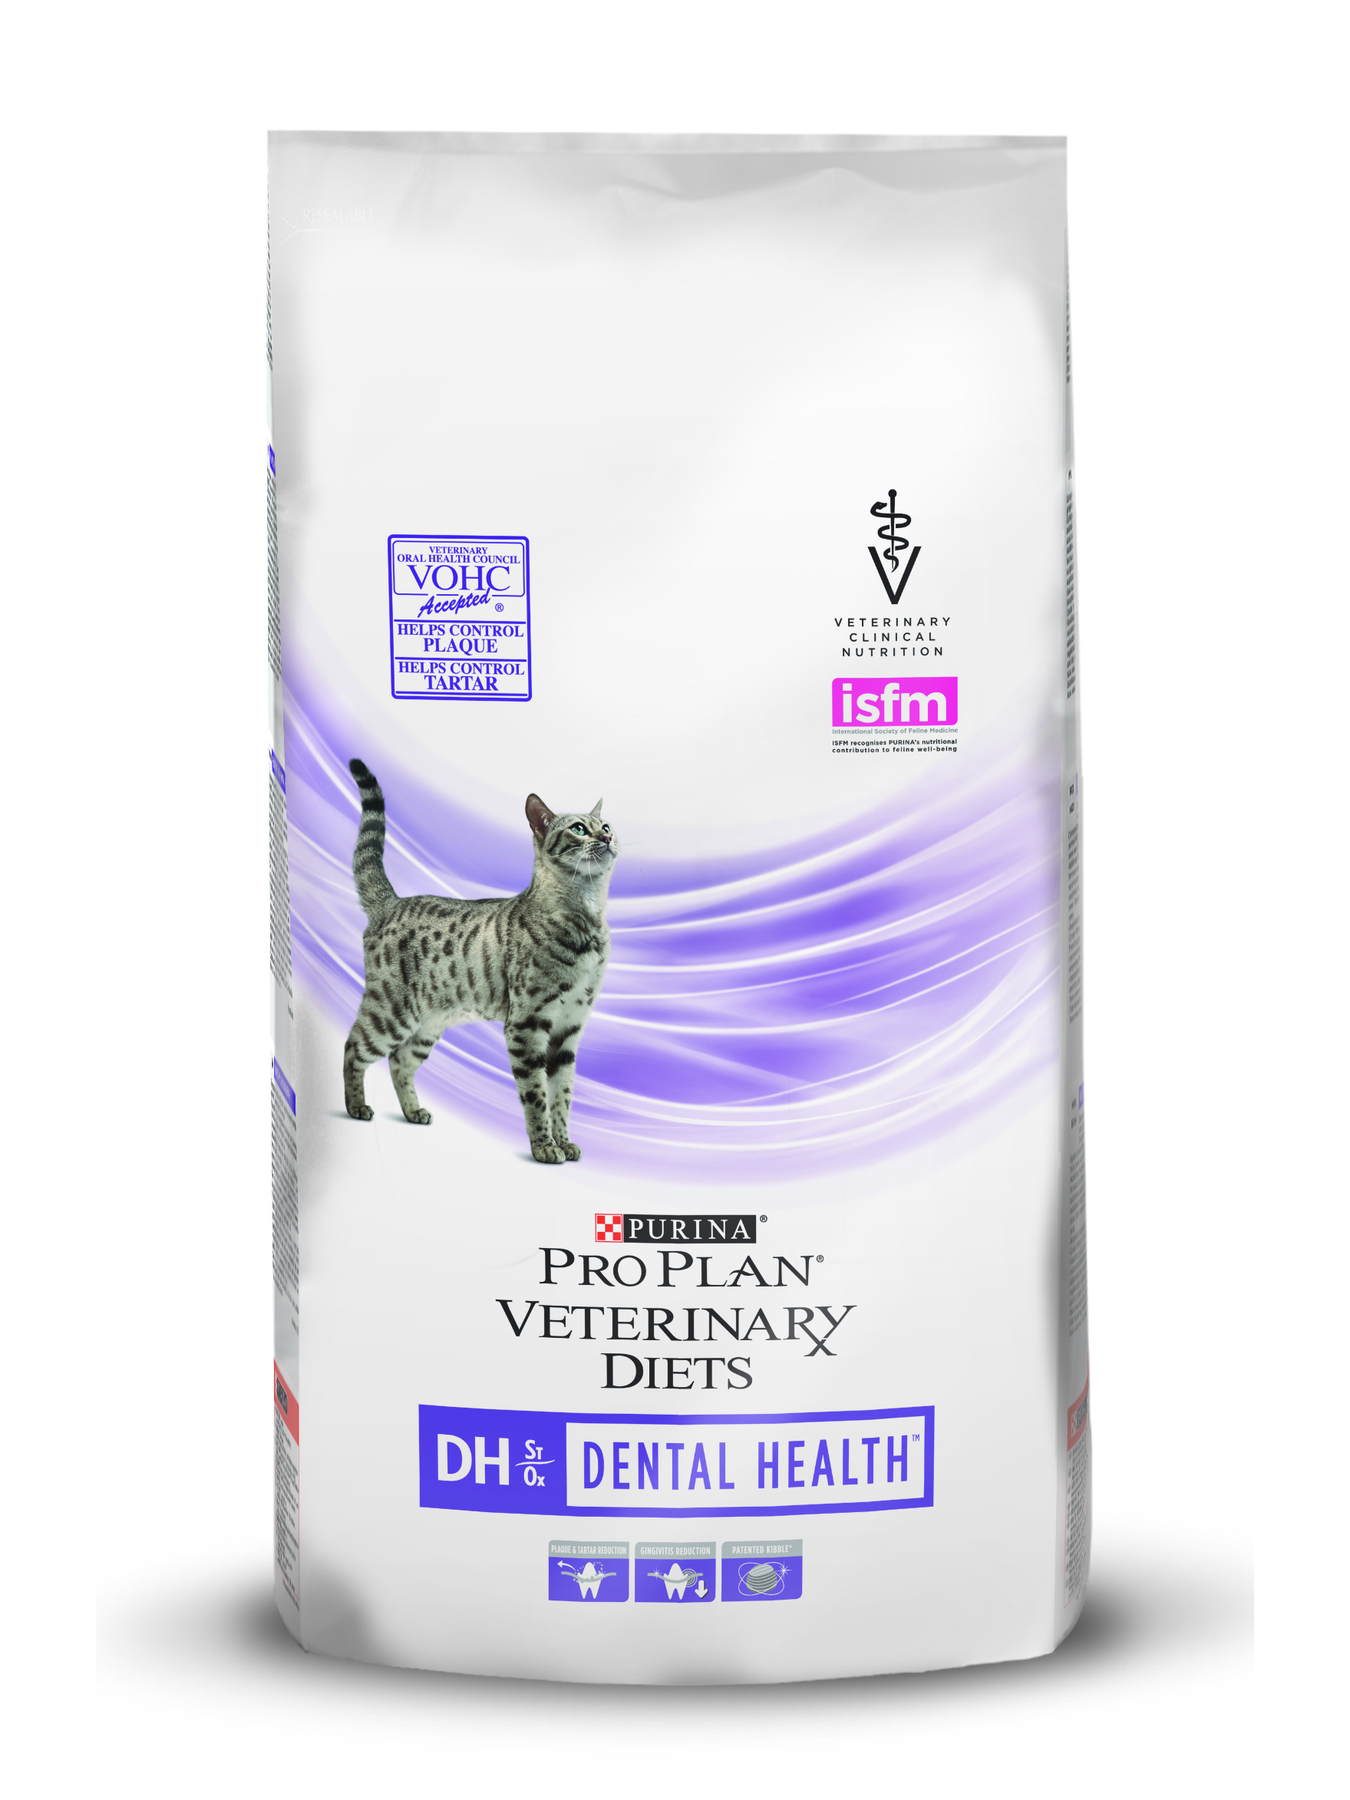 Pro Plan Veterinary Diets DH Dental food for cats with diseases of the oral cavity, 1 kg image